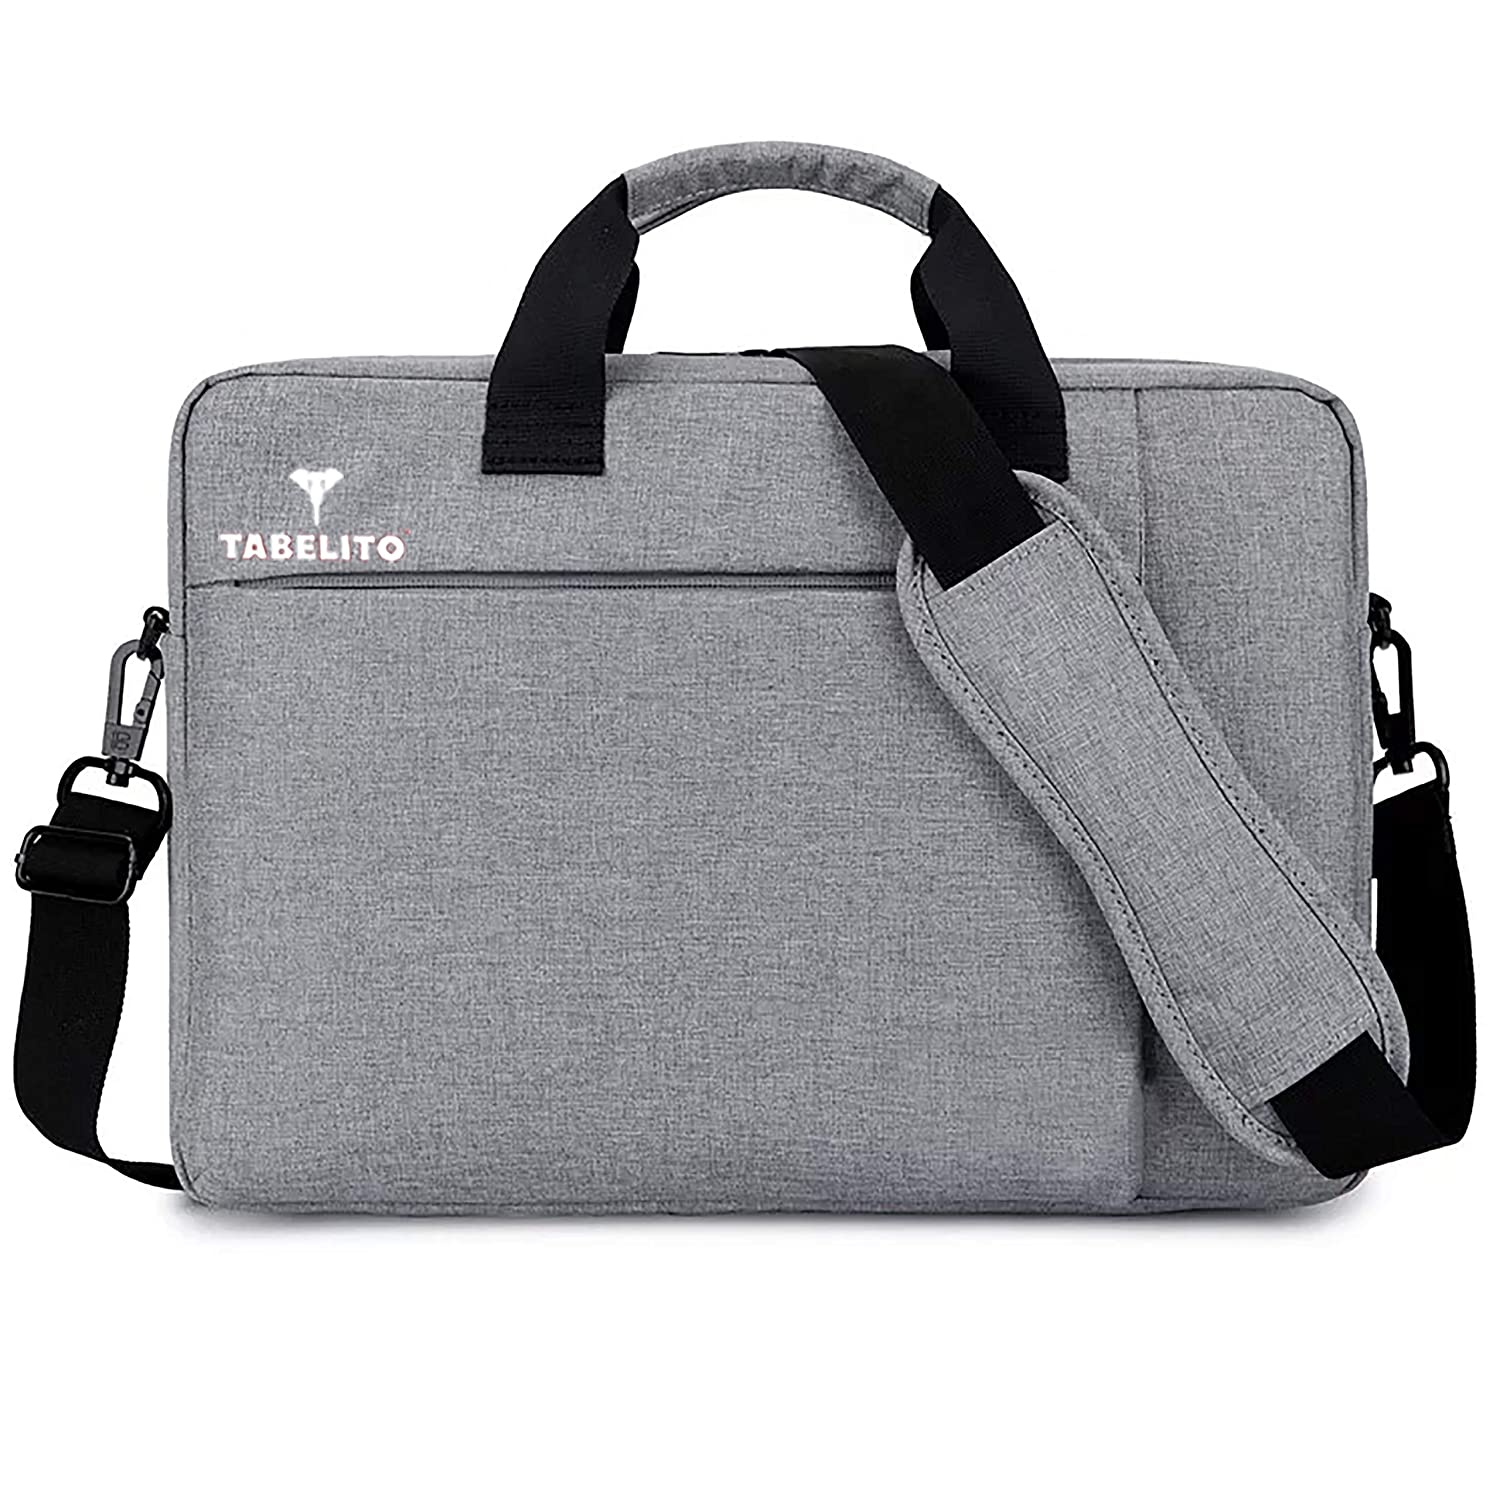 Tabelito 15.6 Inch Office Laptop Bags Briefcase $10.75 Coupon